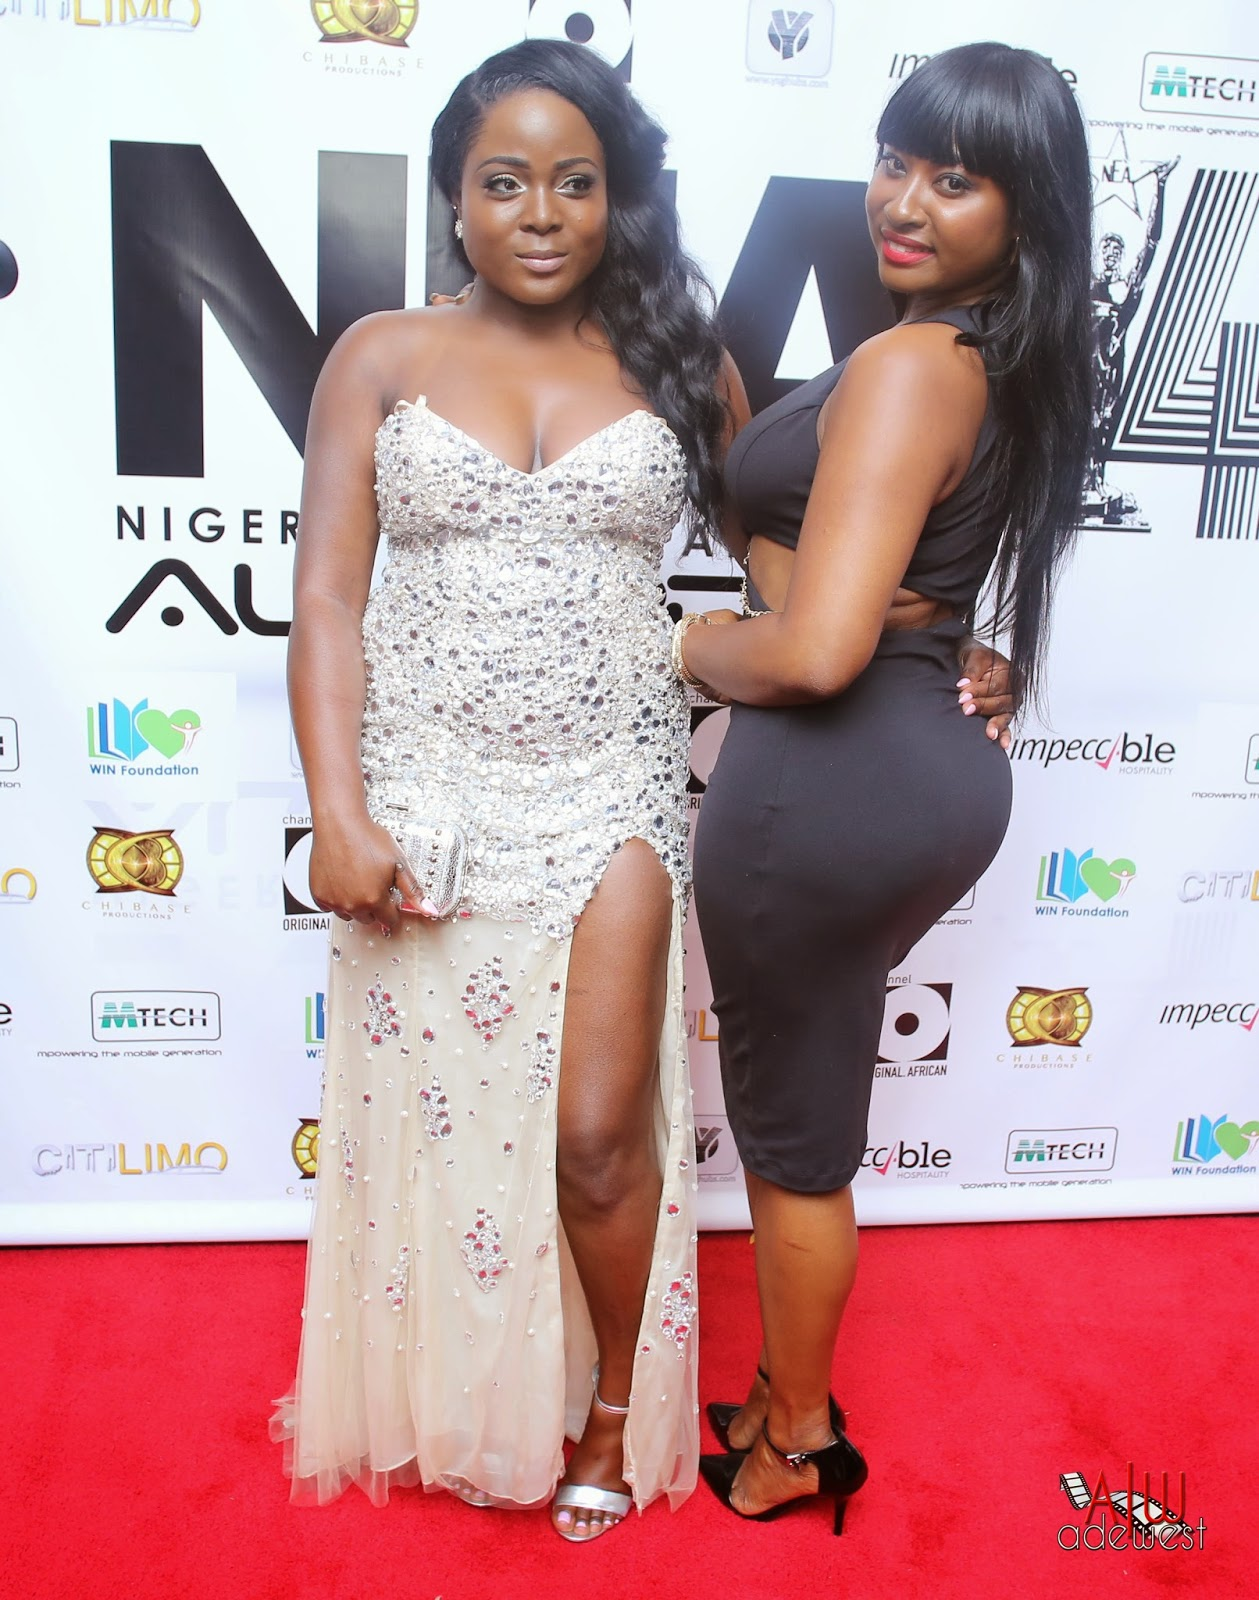 P67A9966 Red carpet photos from 2014 Nigeria Entertainment Awards